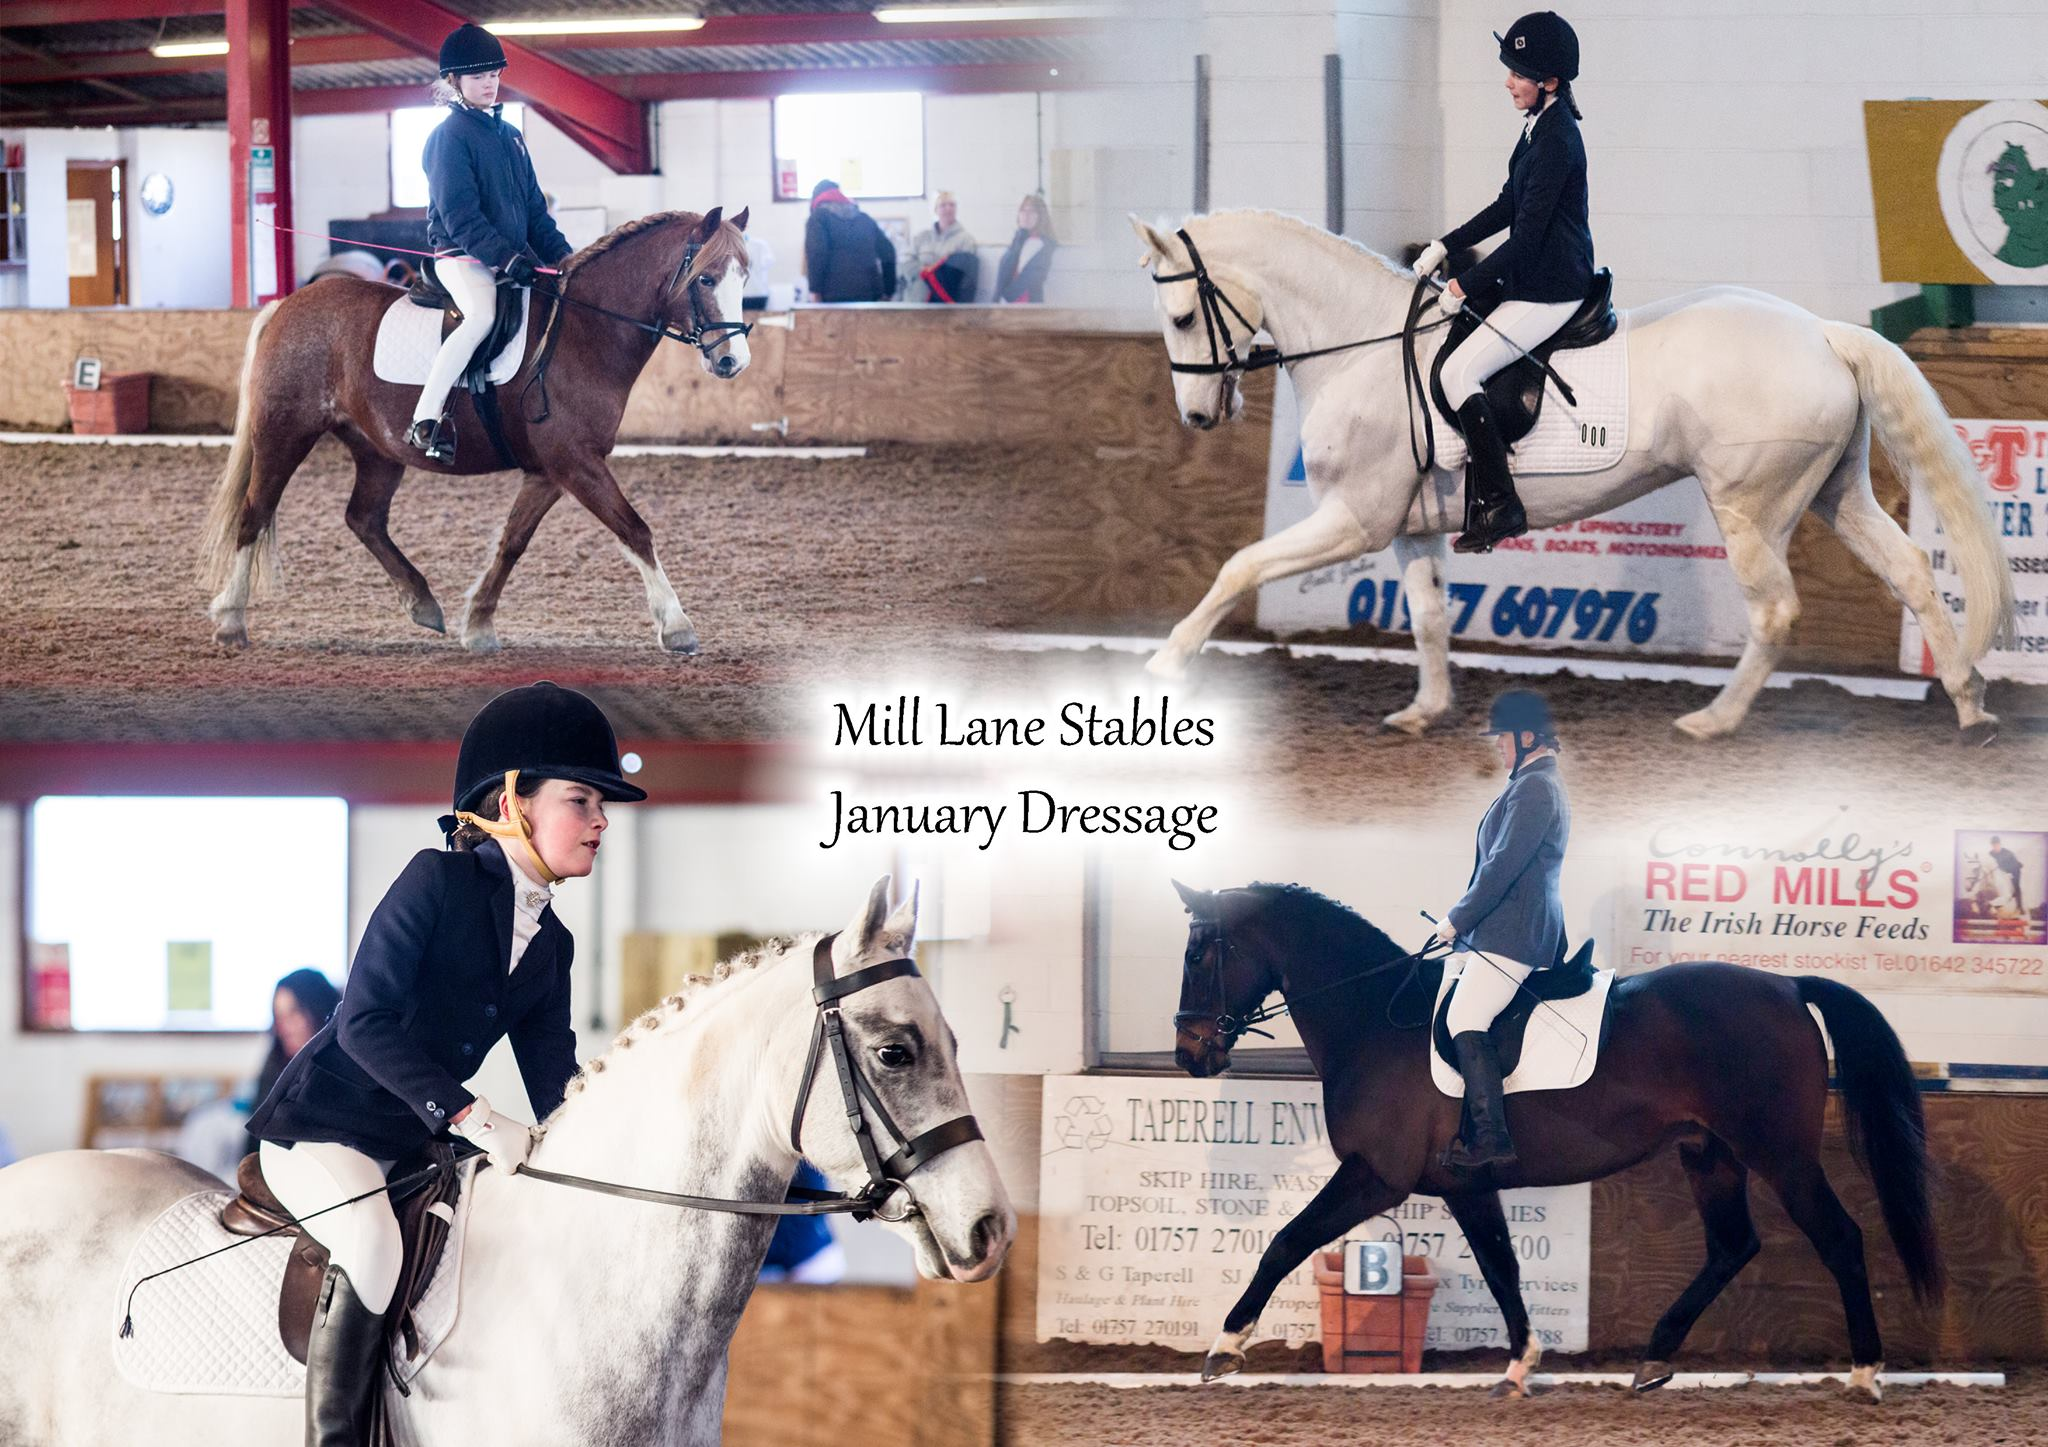 Mill Lane Stables Dressage